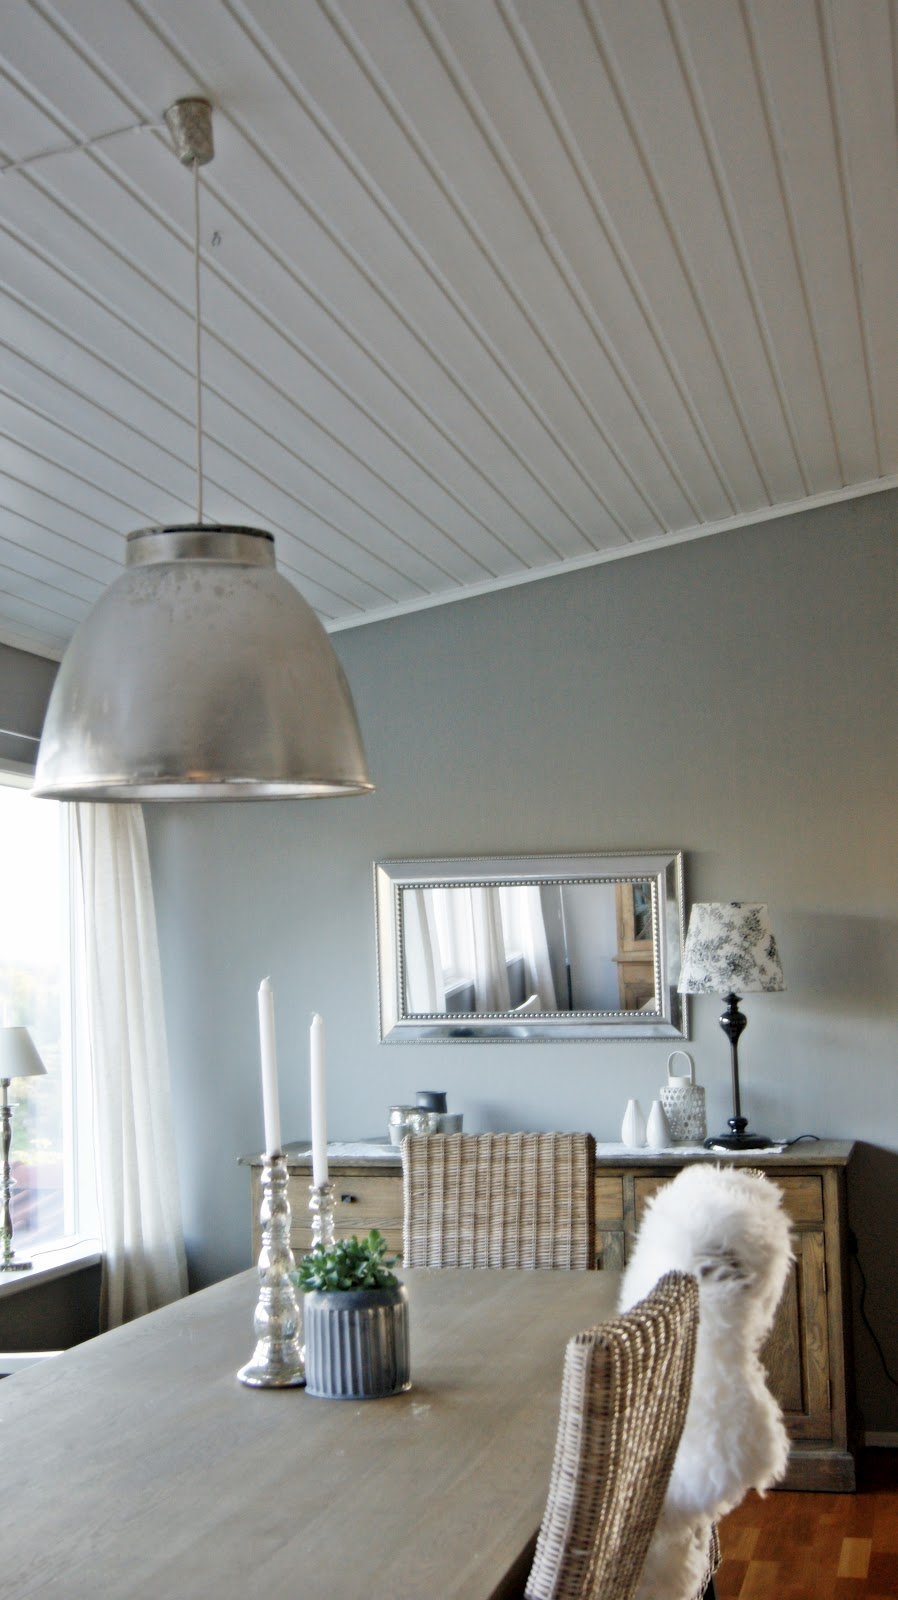 Stue Lampe. Onsdag September With Stue Lampe. Free For Le Klint With ...